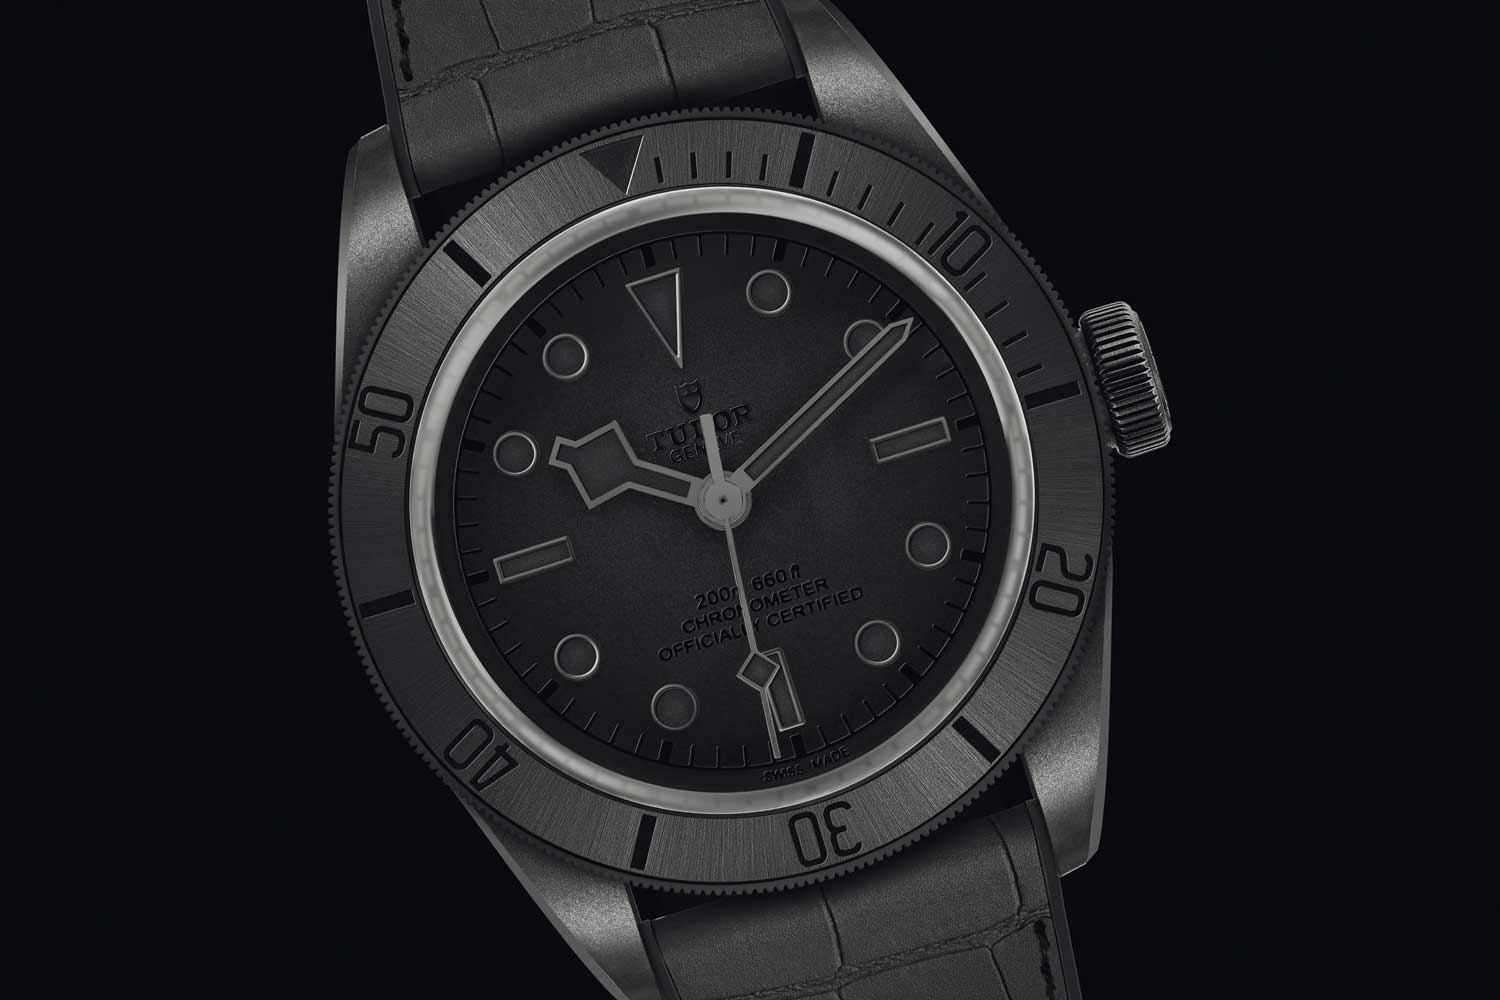 The Tudor Black Bay Ceramic One sold for a staggering CHF350k at the Only Watch auction in 2019